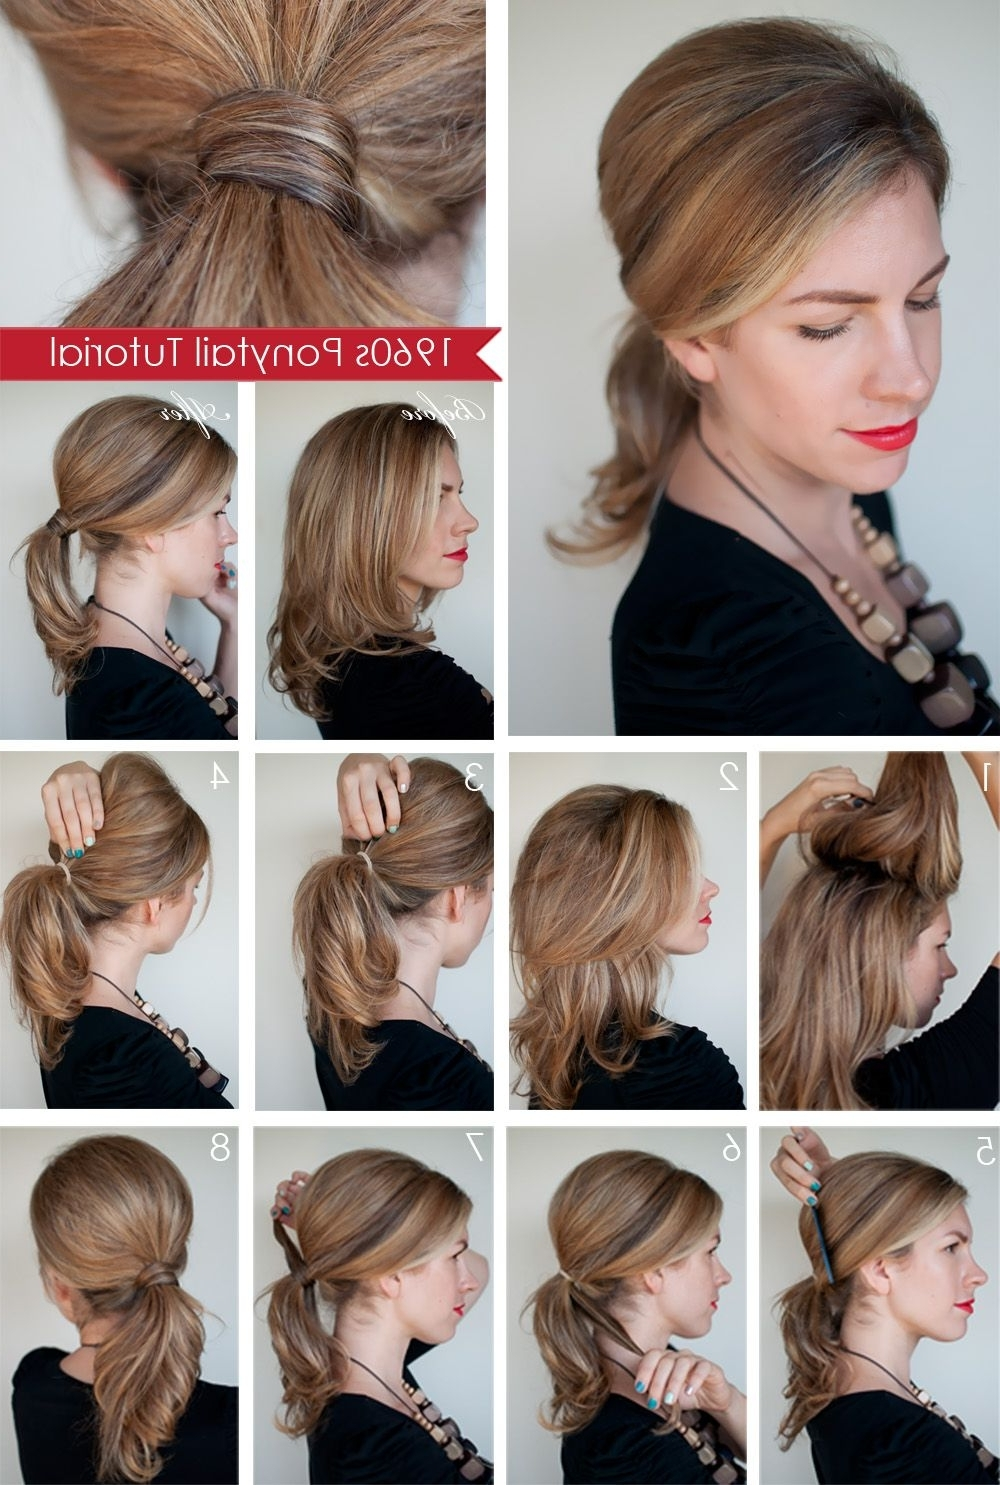 Formal Hairstyles For Easy Hairstyles For Layered Hair Short For Cute And Easy Updo Hairstyles For Short Hair (View 12 of 15)